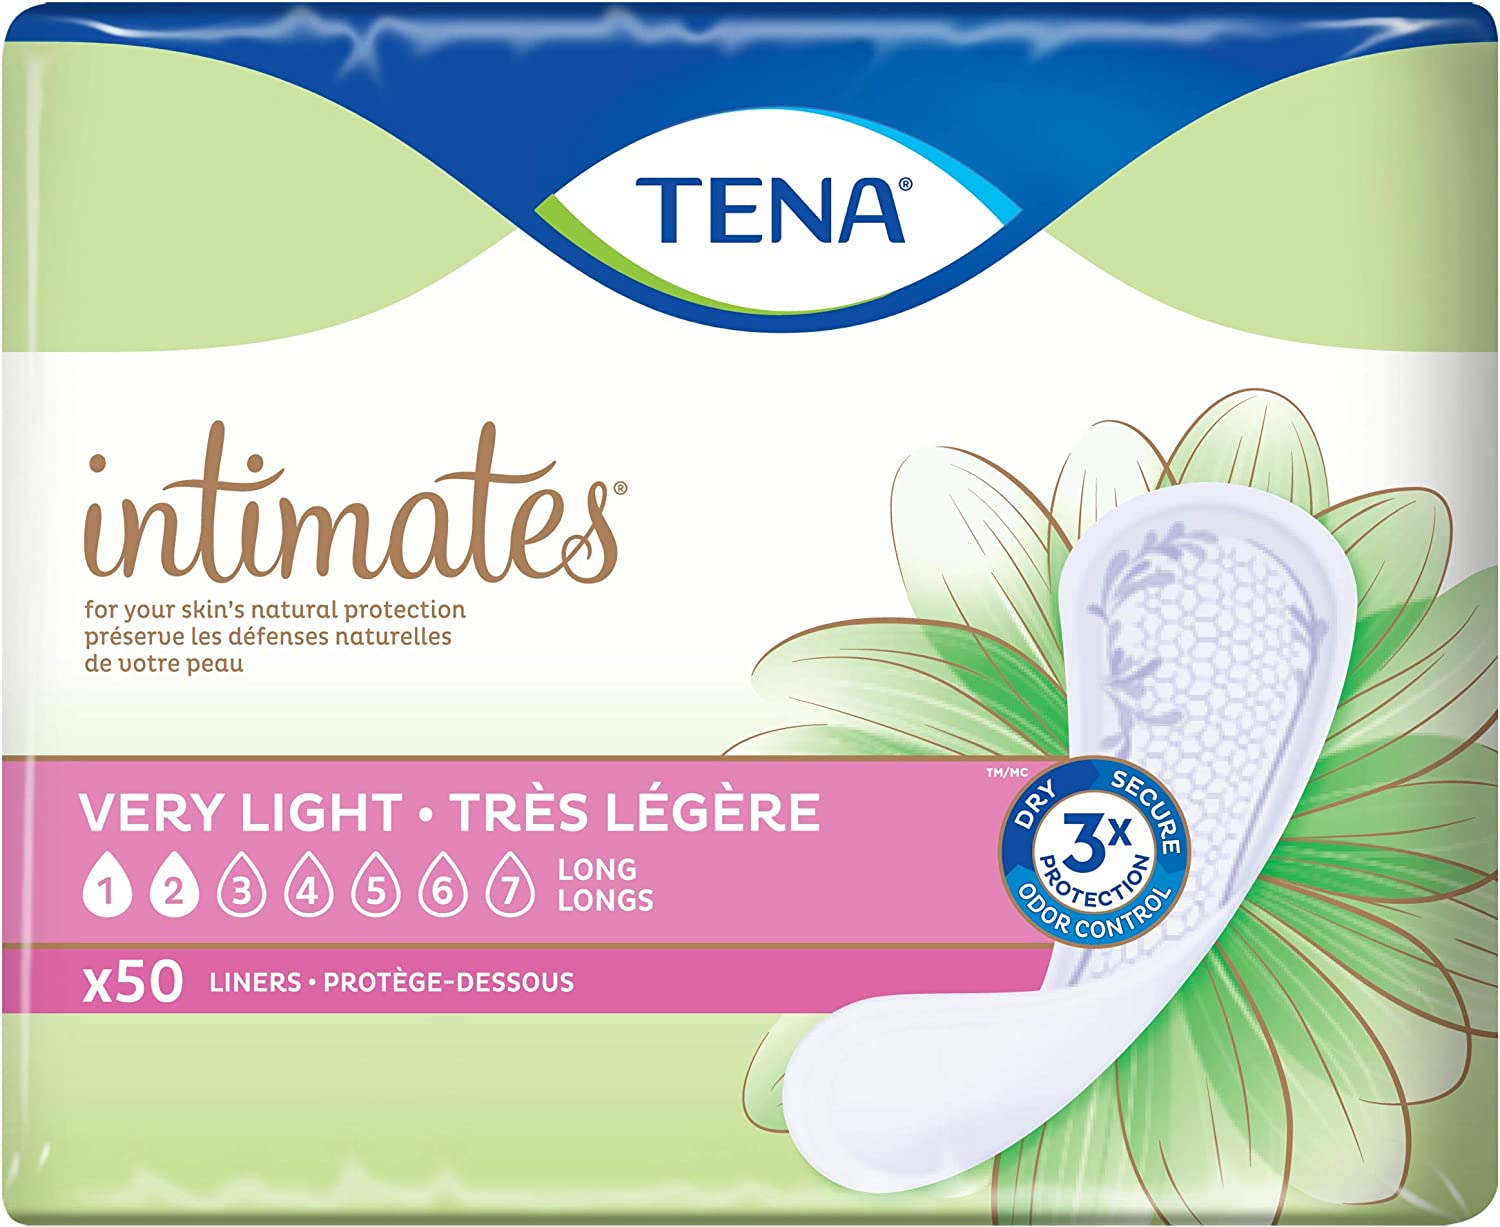 Tena Incontinence Liners for Women Max 78% OFF Long 50 of ea 1 Count Pack Quantity limited